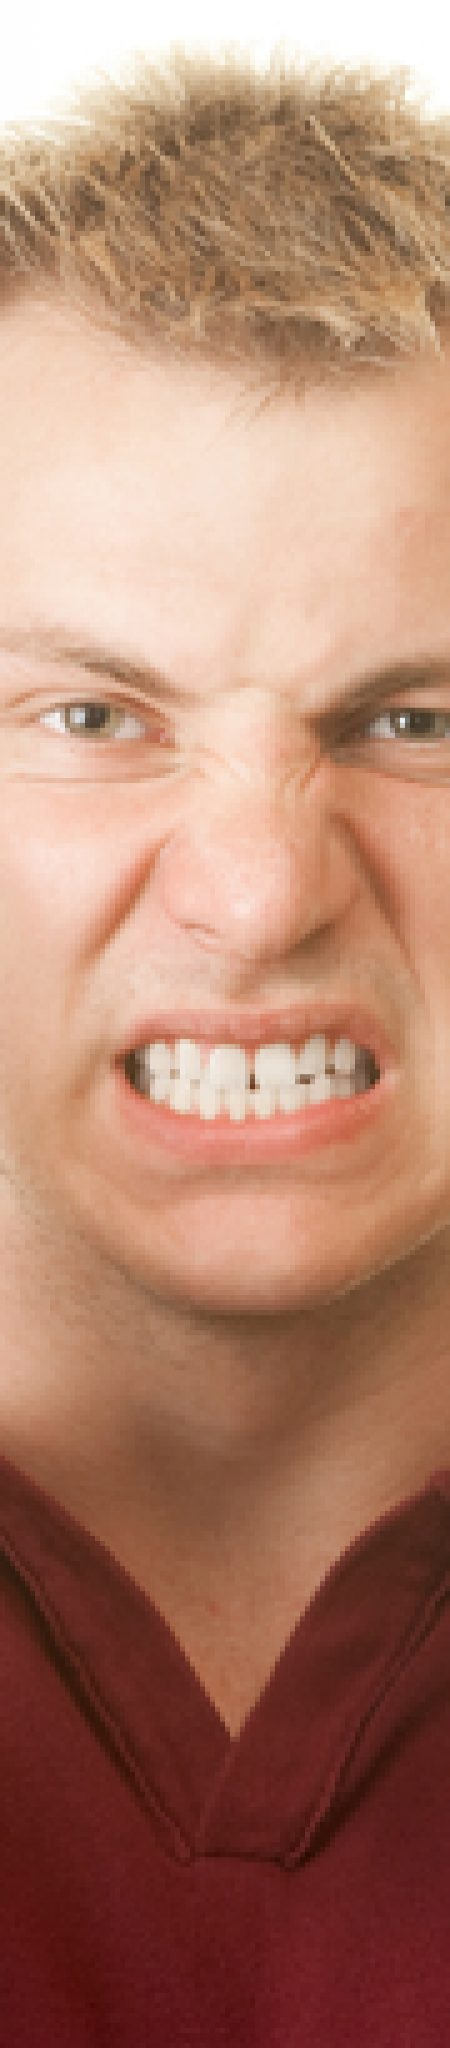 Are-you-Grinding-and-Clenching-your-Teeth Teeth Grinding: Its Dangers and Treatment